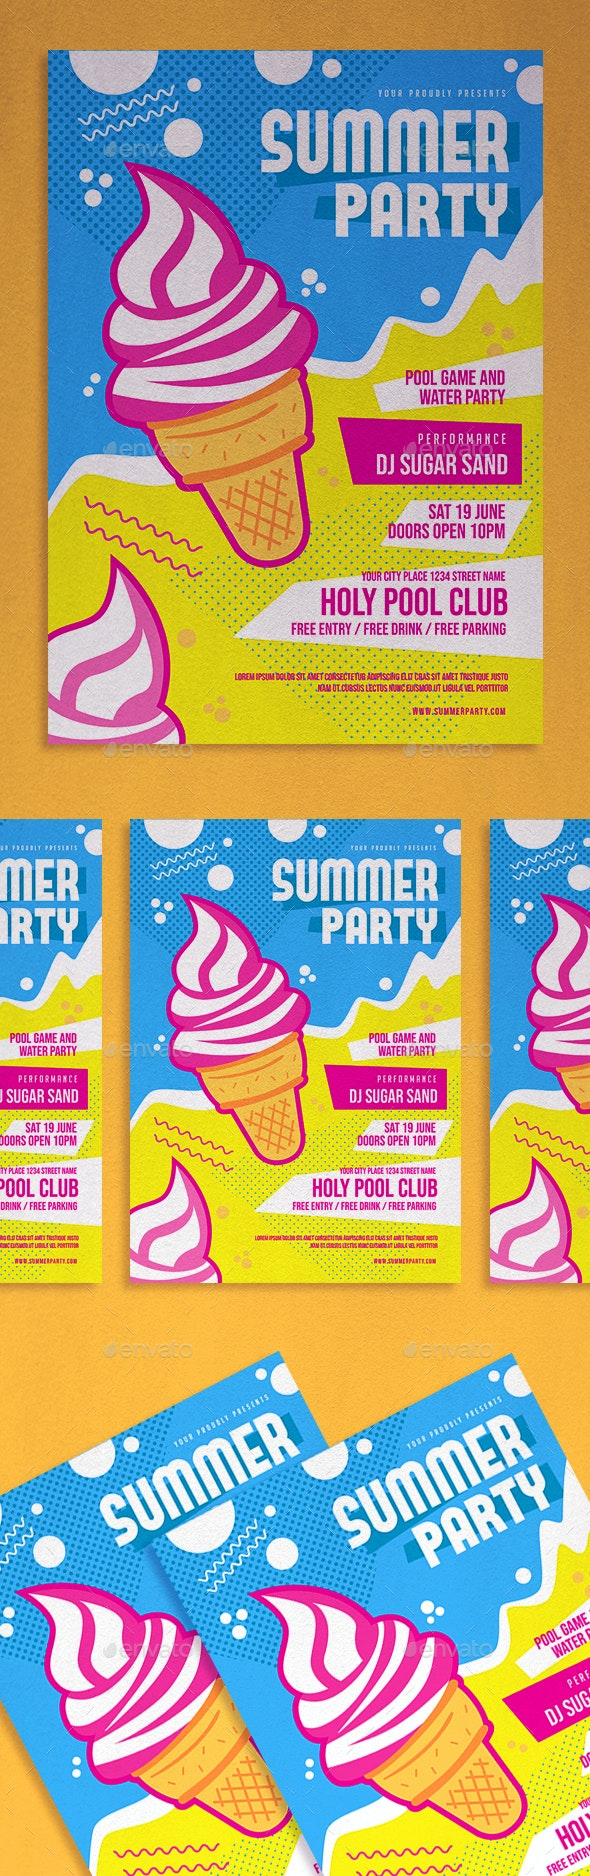 Summer Party Flyer - Invitations Cards & Invites